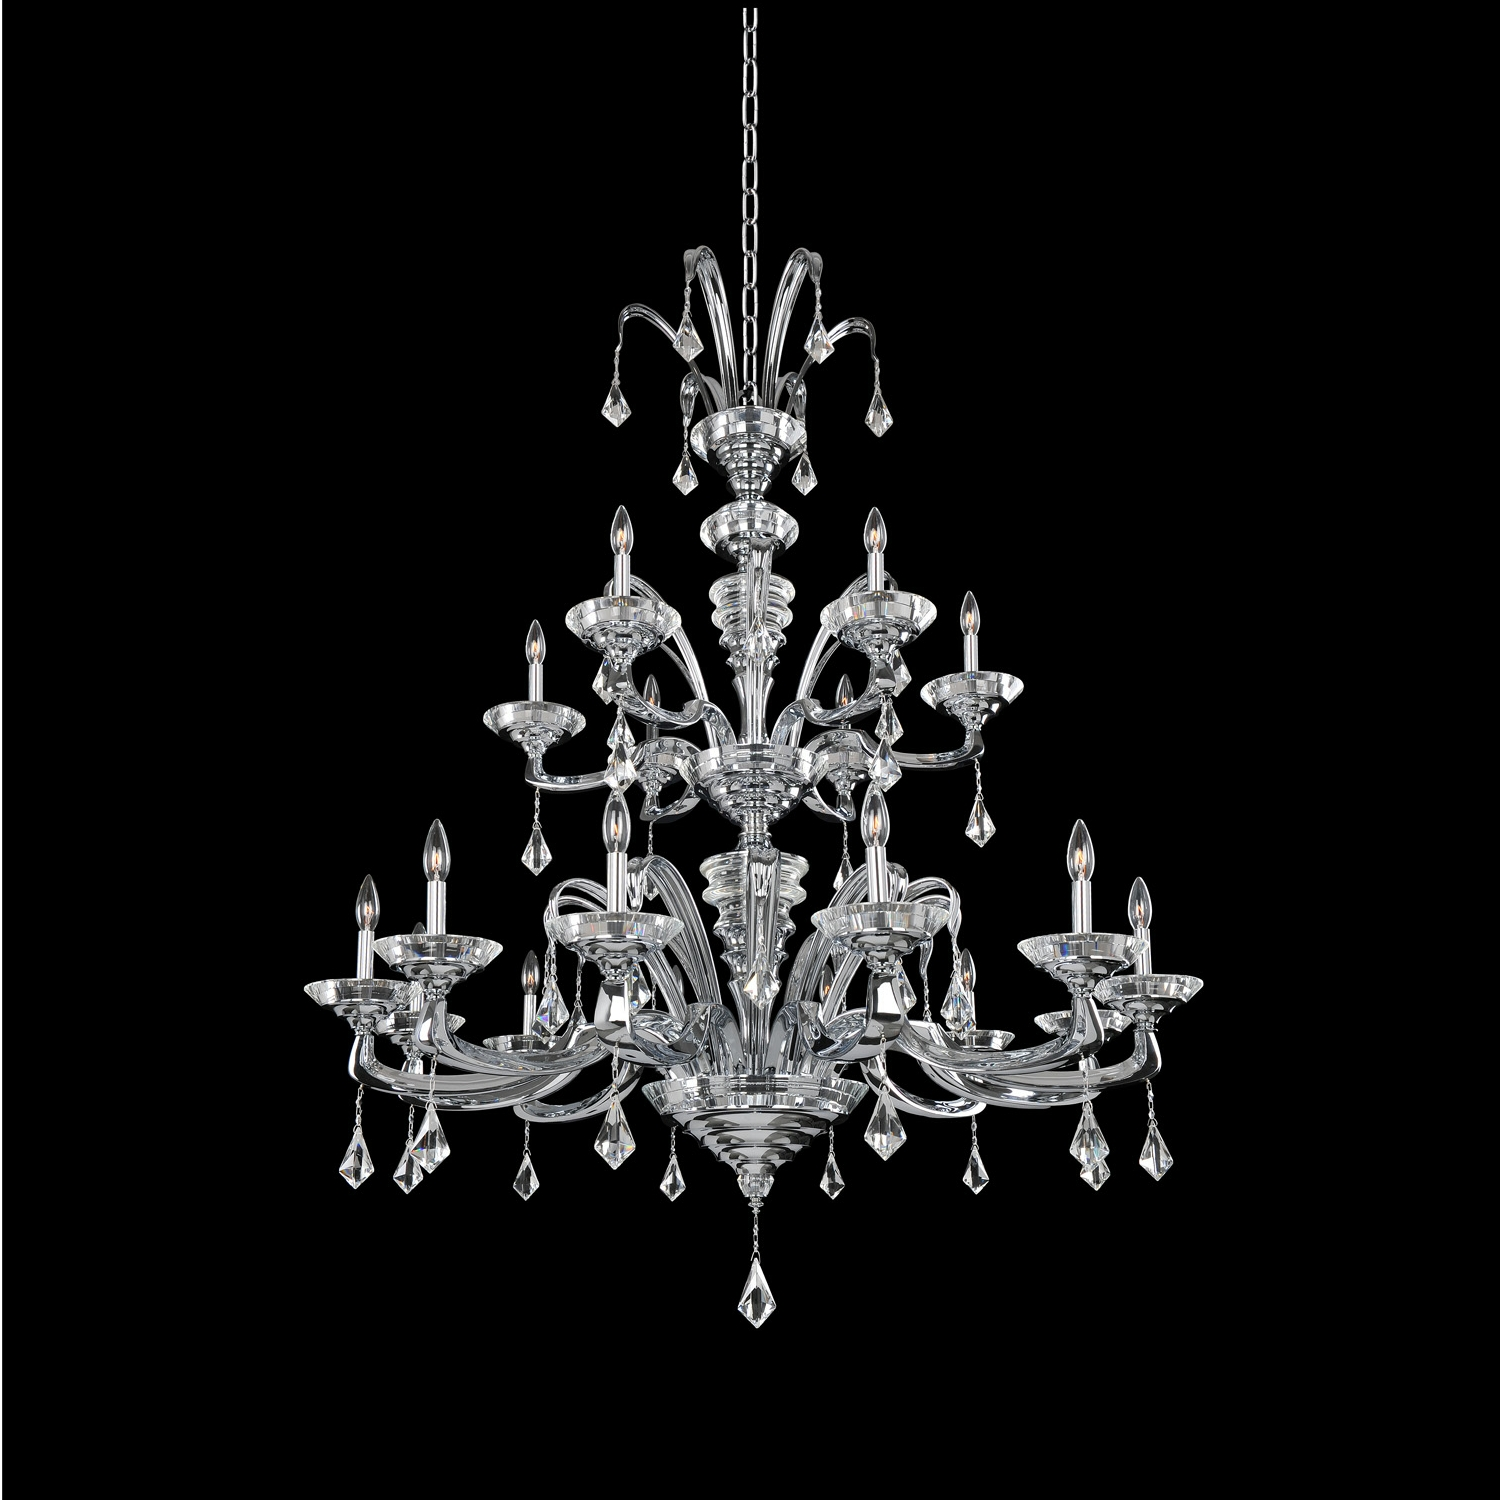 Cosimo 18 Light Chandelier